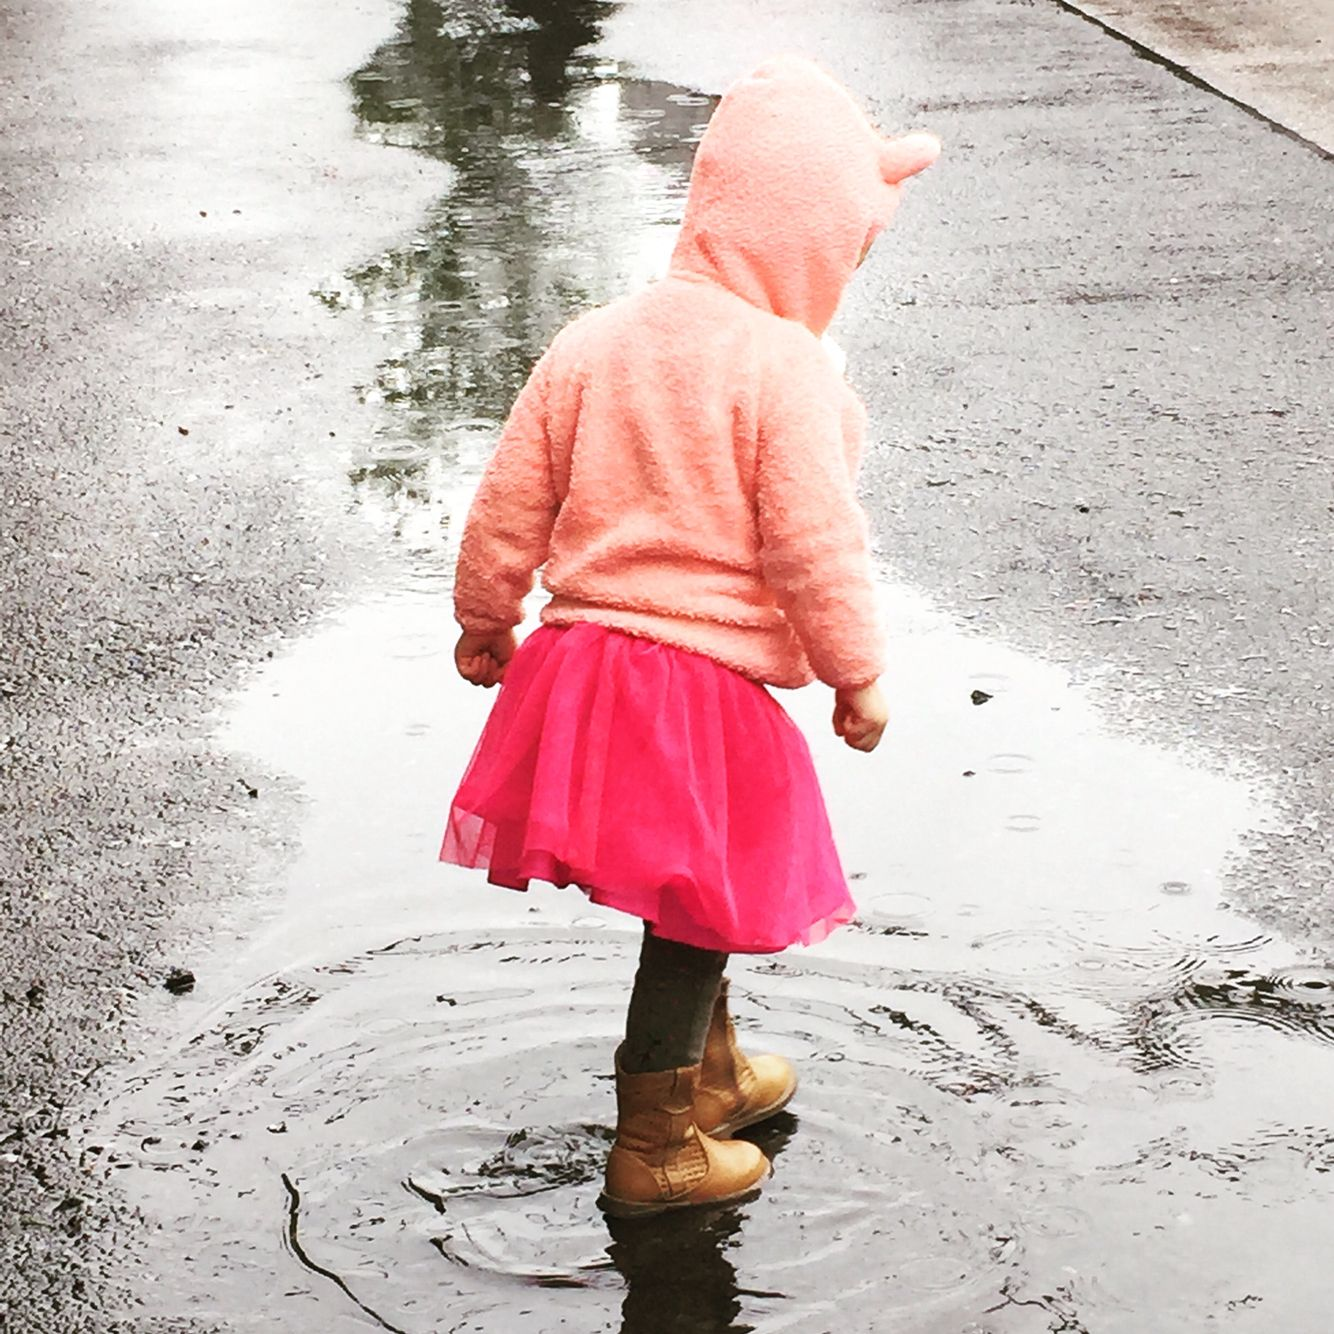 """""""When life gives you a rainy day, play in the puddles"""""""